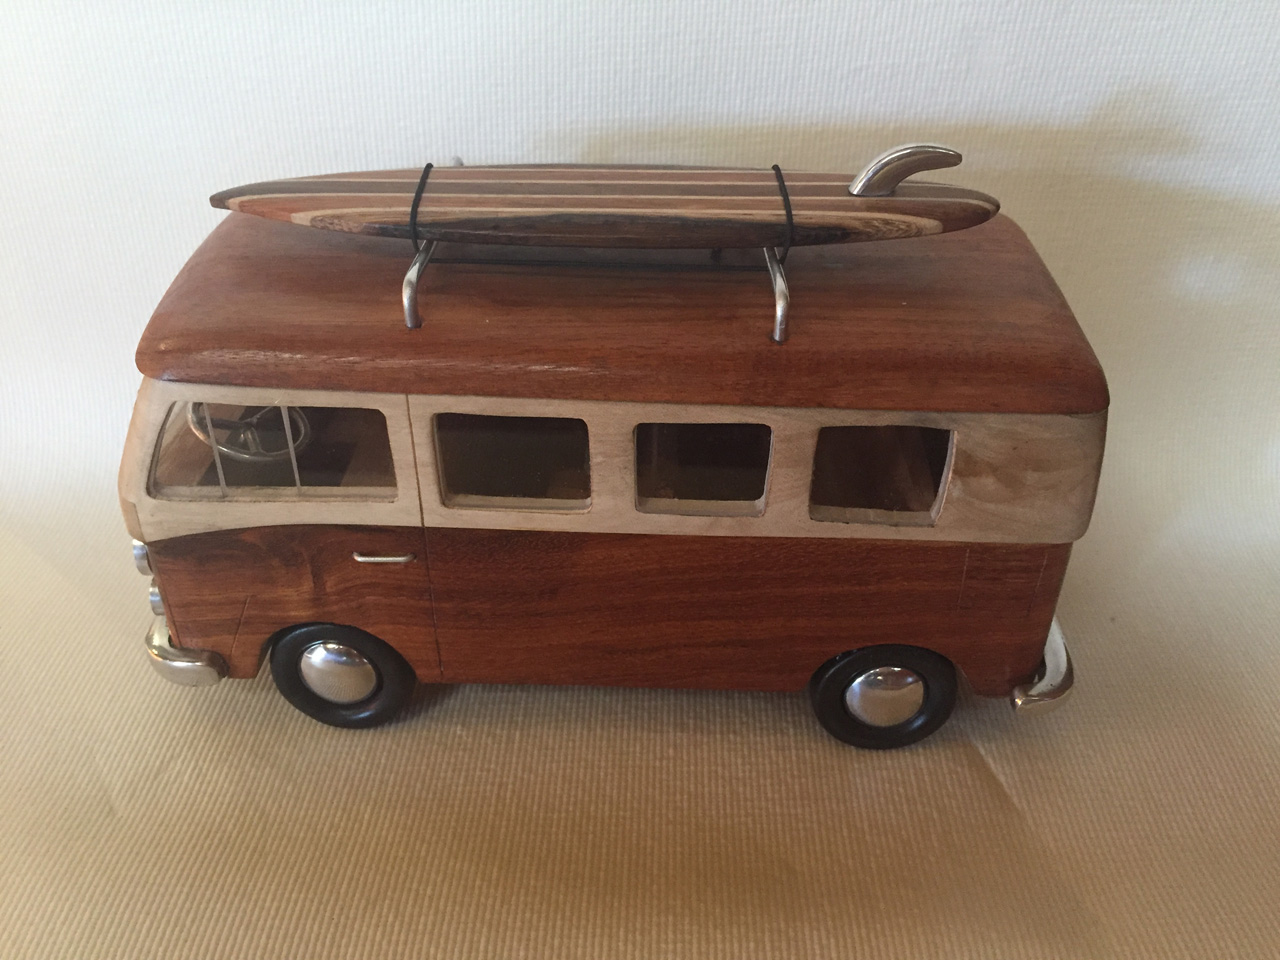 VW Van by Doug Miller wood and metal model with surfboard